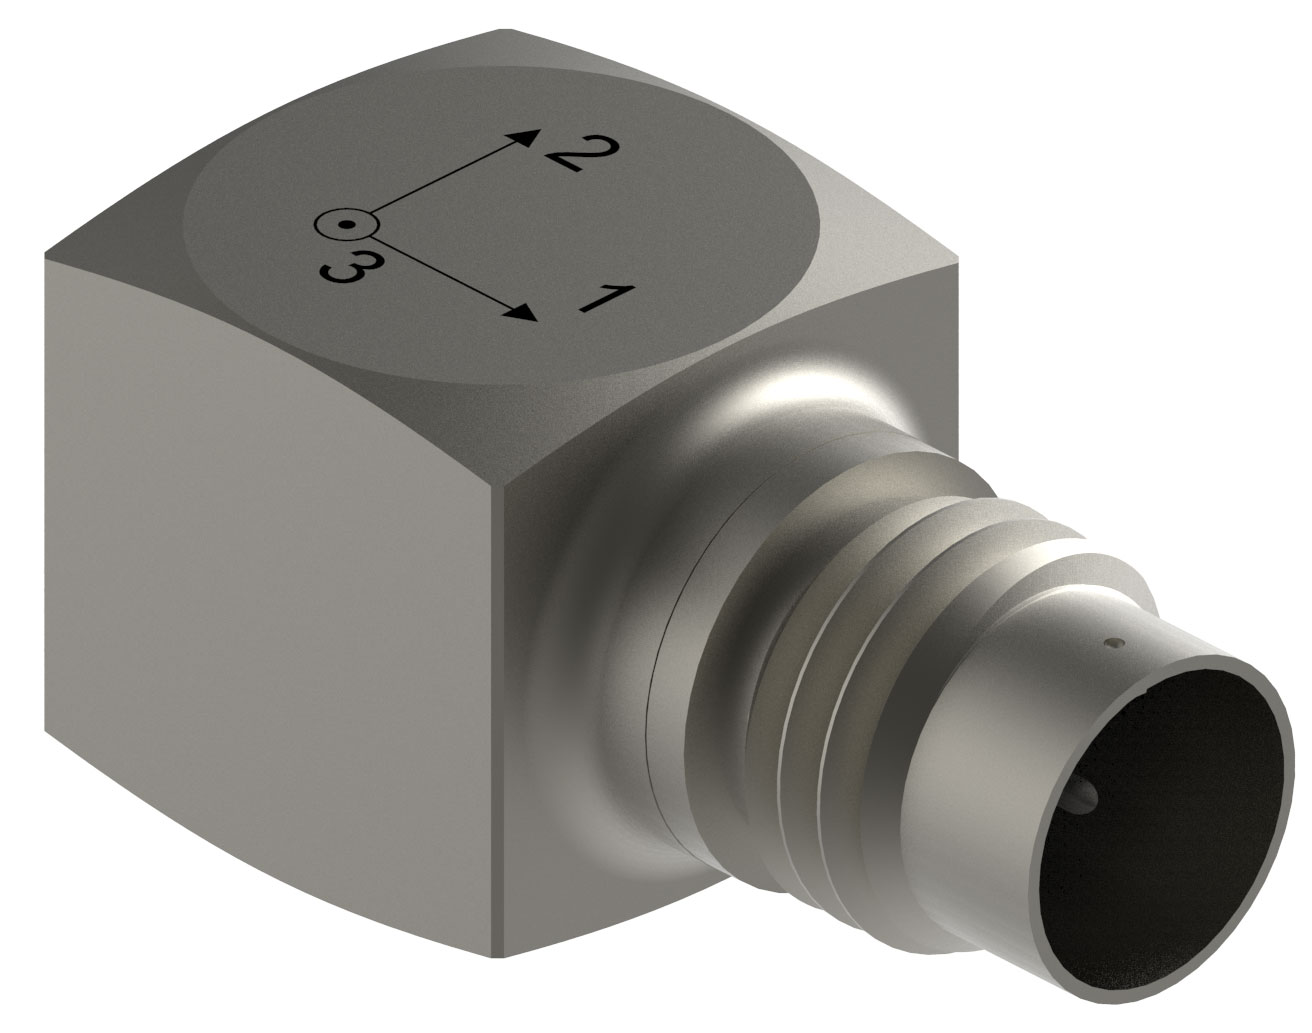 Triaxial Accelerometer is designed for modal analysis.